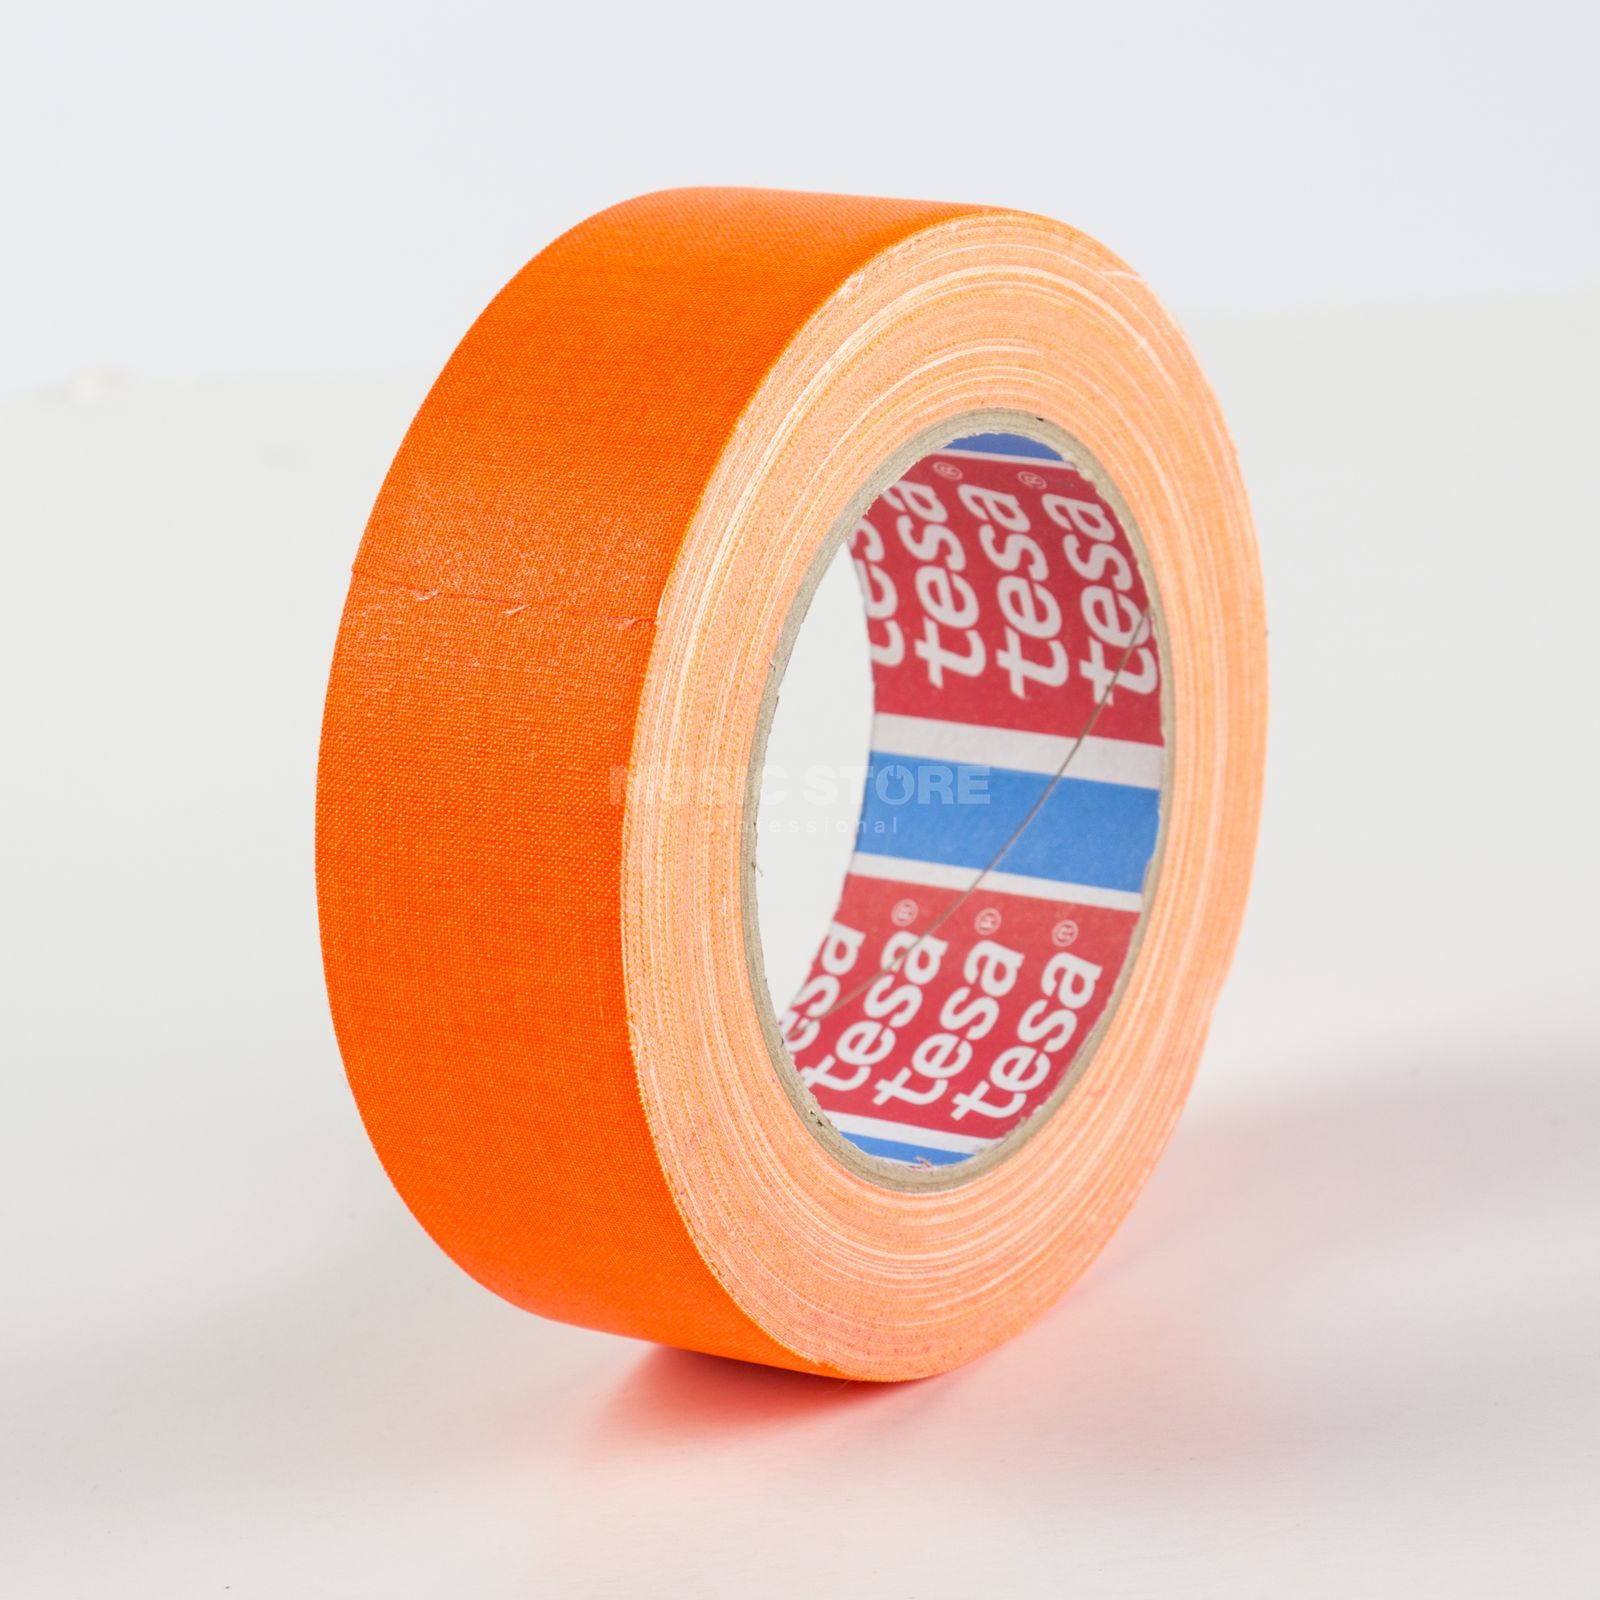 Tesa Highlight Gaffa Tape 4671 neonorange, 25m, 38mm Produktbild